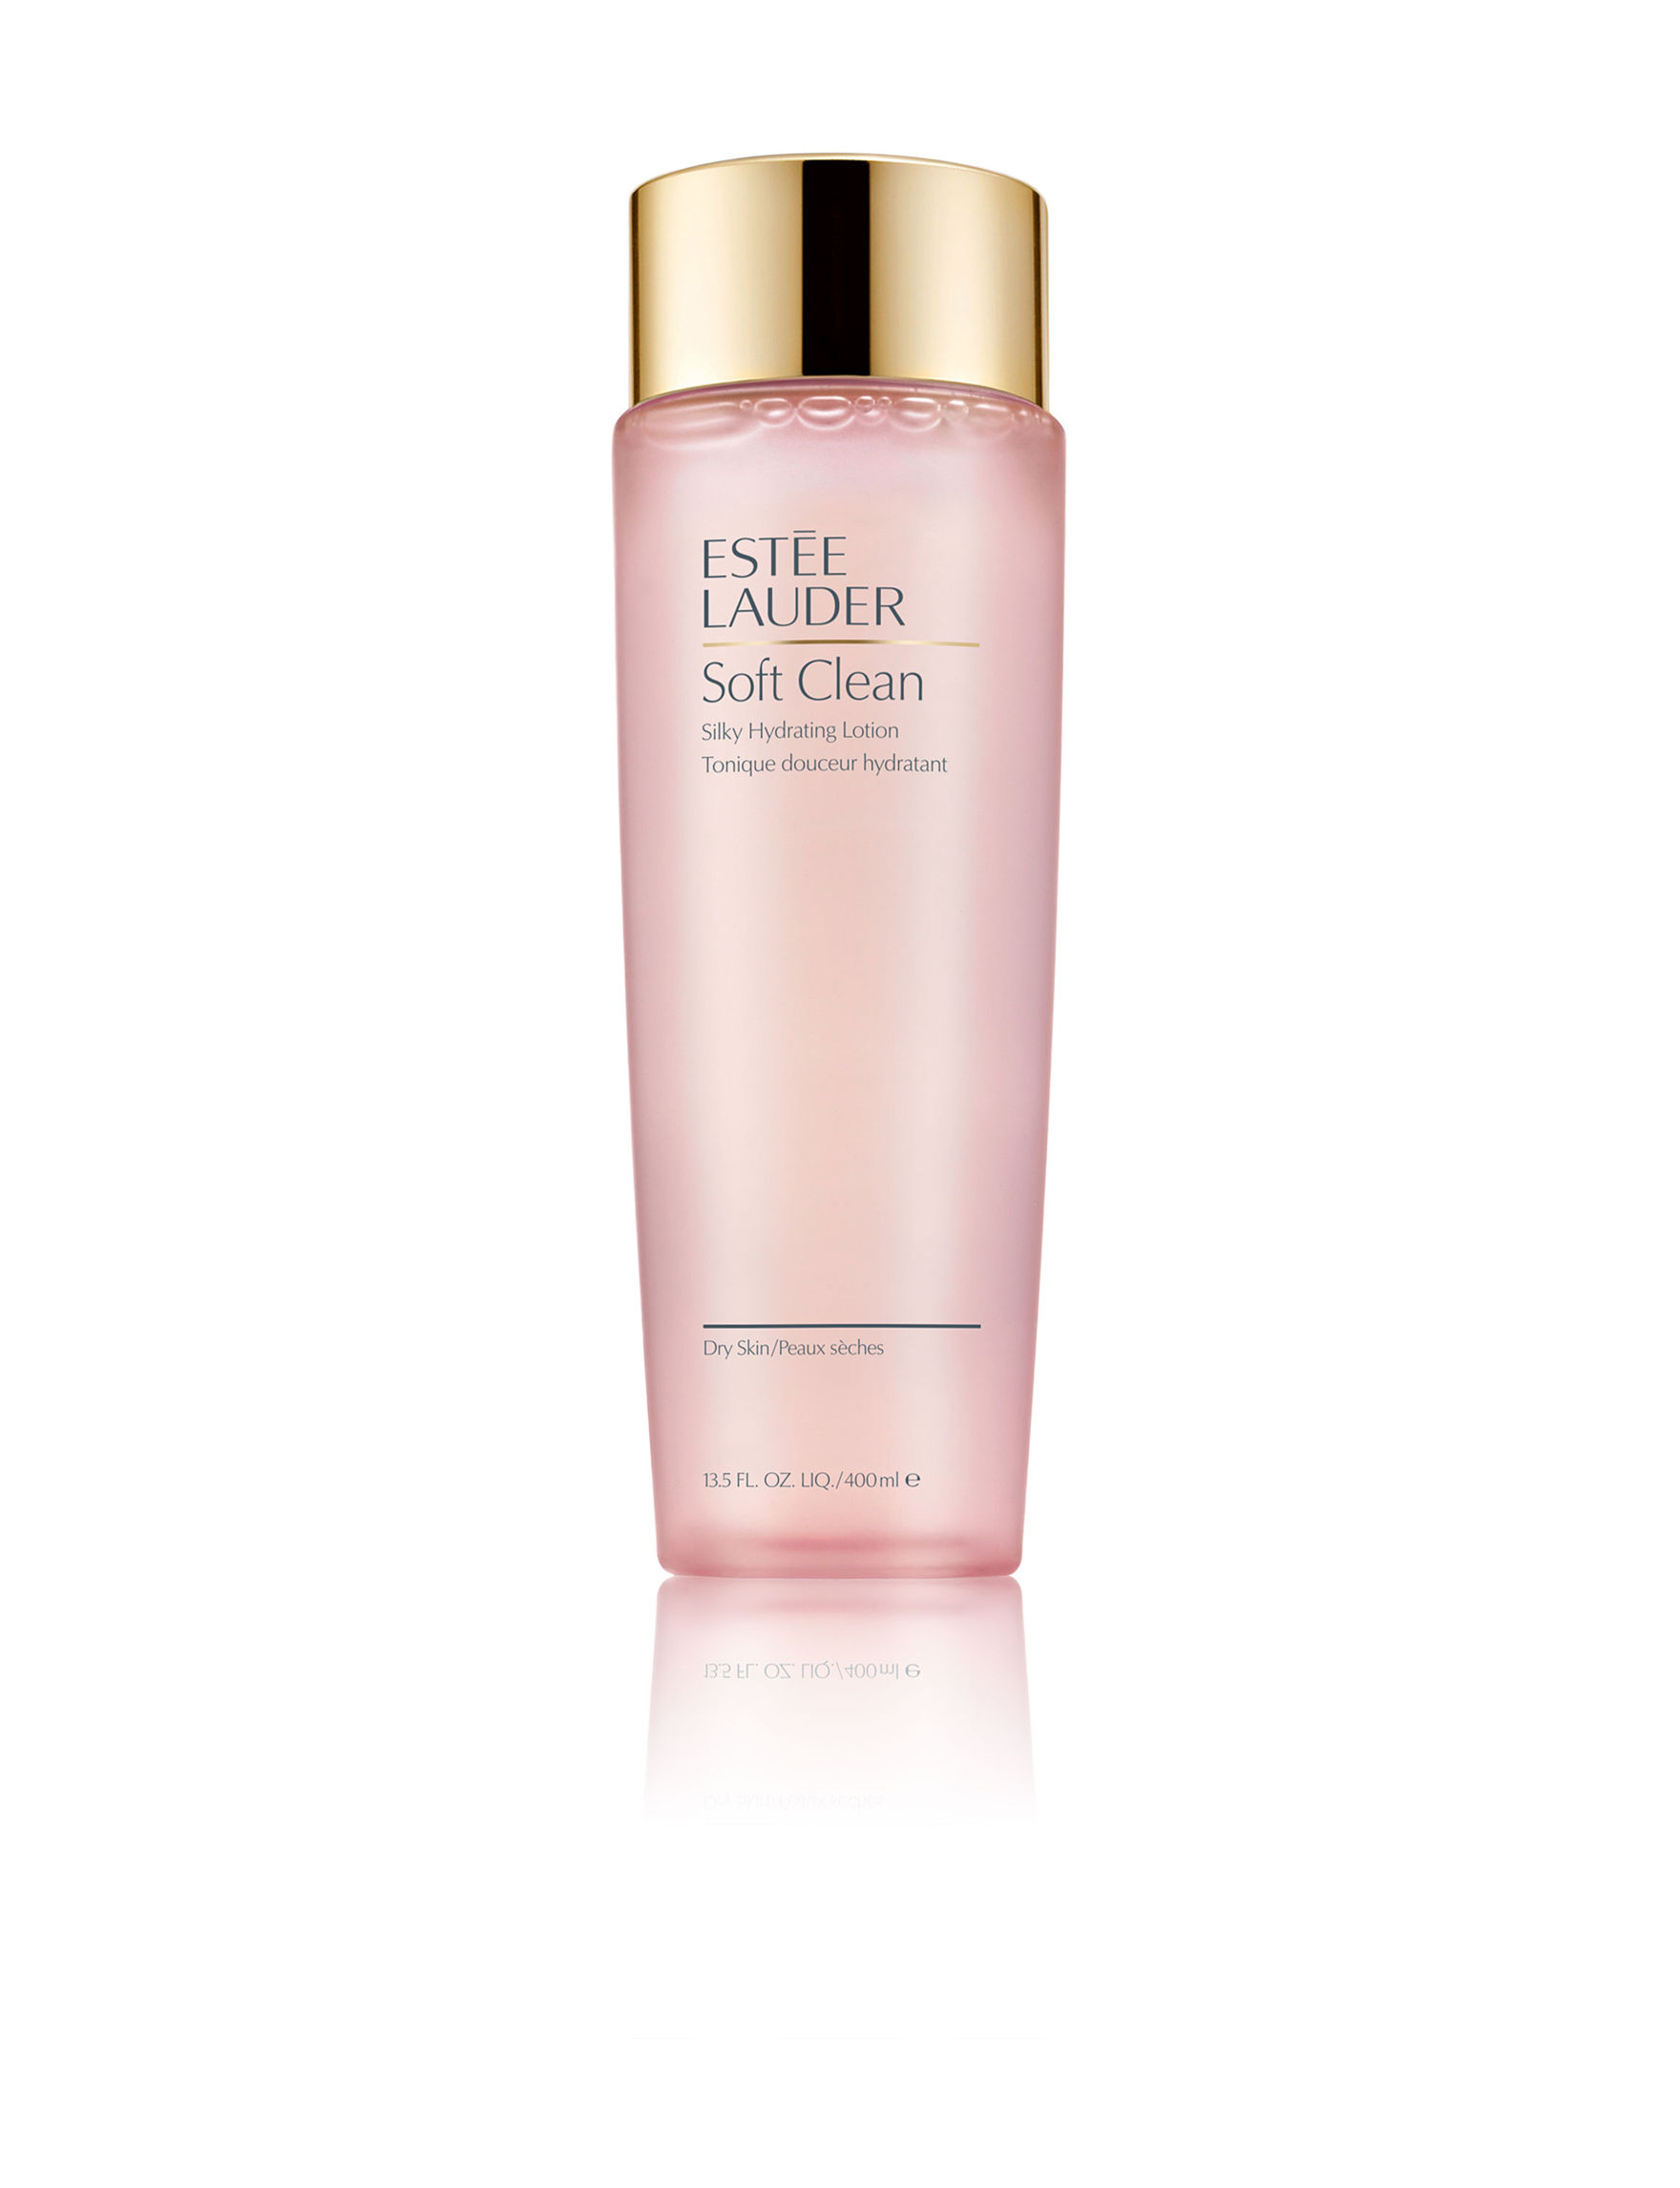 Estee Lauder Pink / Gold Cleansers & Toners